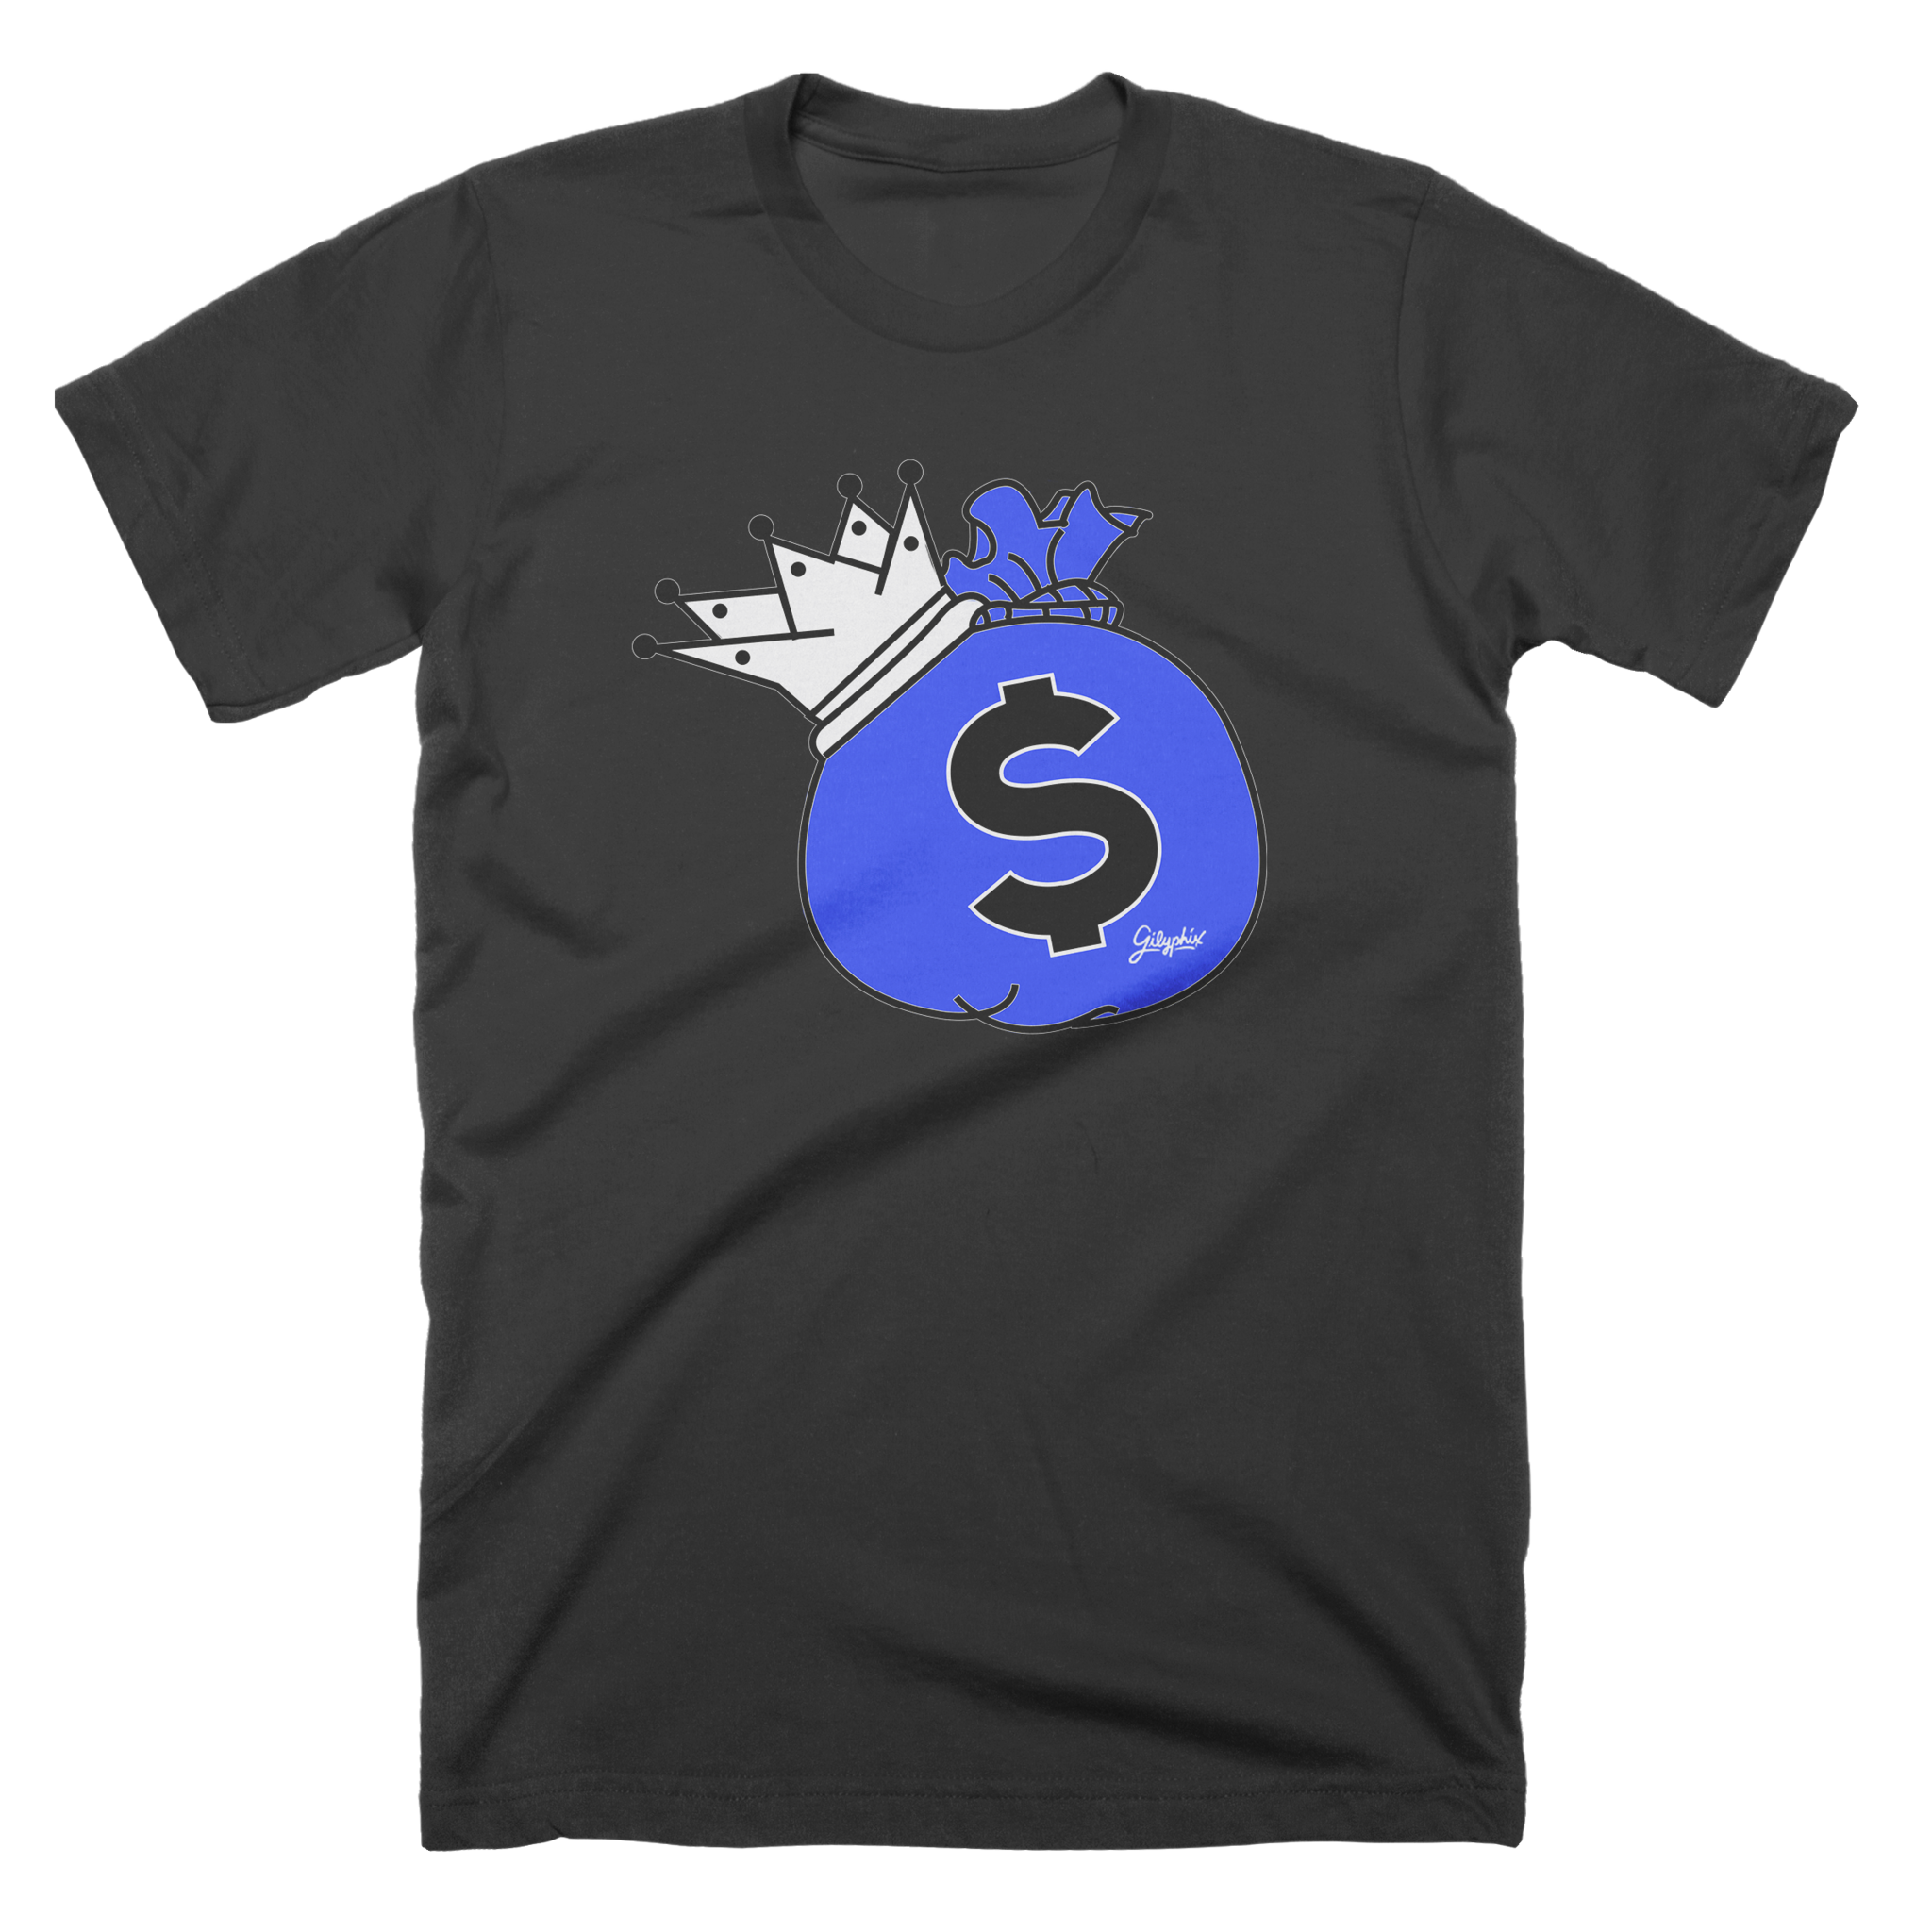 Gilyphix Money King T-Shirt